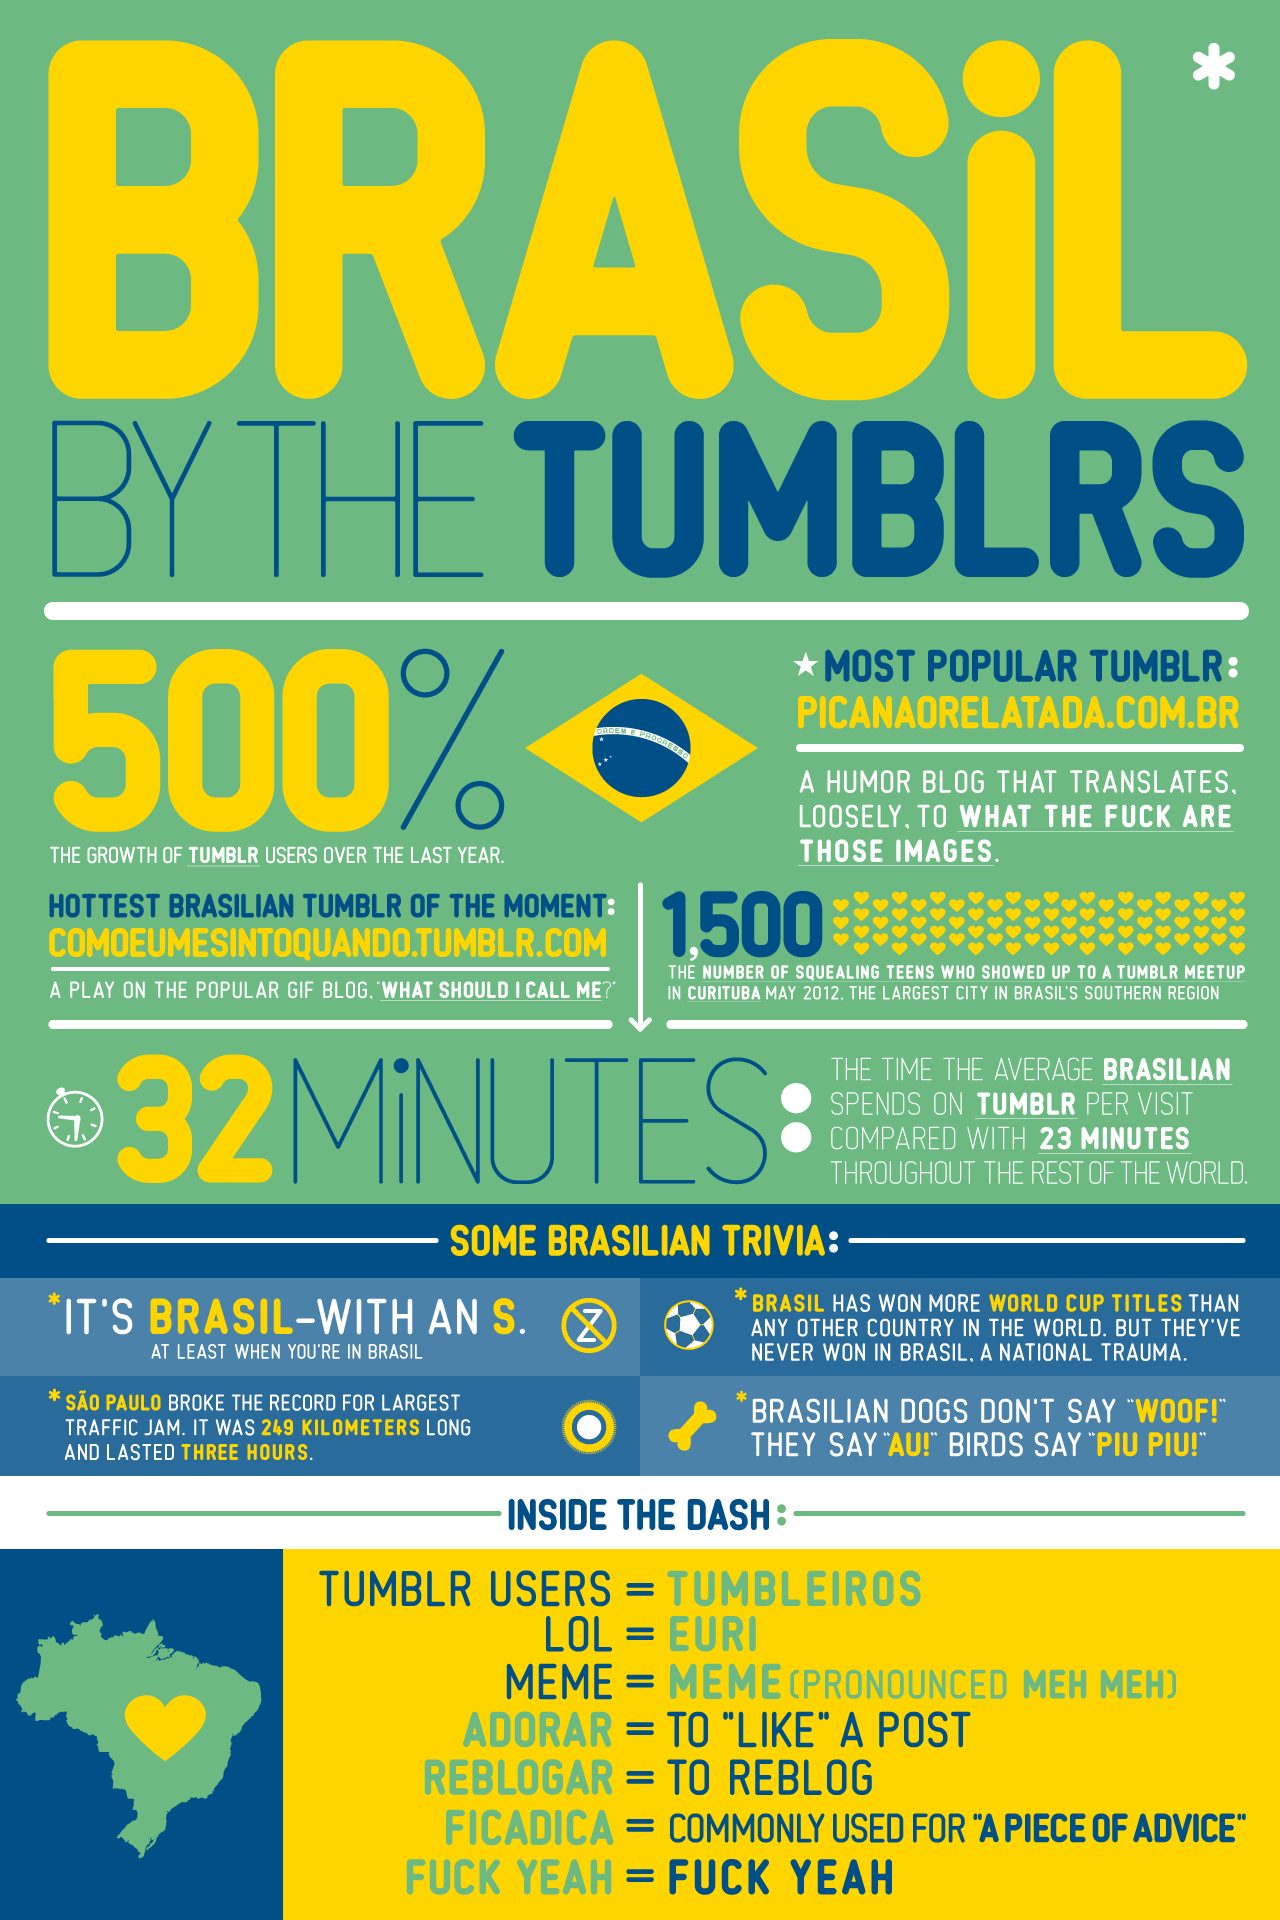 storyboard:  Brasil: By the Numbers Brasil! It's Tumblr's second-largest country, and, last week, the site of two giant Tumblr celebrations, a 1,500-person meetup (#tumblrcuritiba!), and — get ready — a One Direction flash mob (at our Tumblr meetup). Here are a few highlights from the nation that's the size of a continent. (And yes, gringos may spell it with a Z … the locals, not so much,)